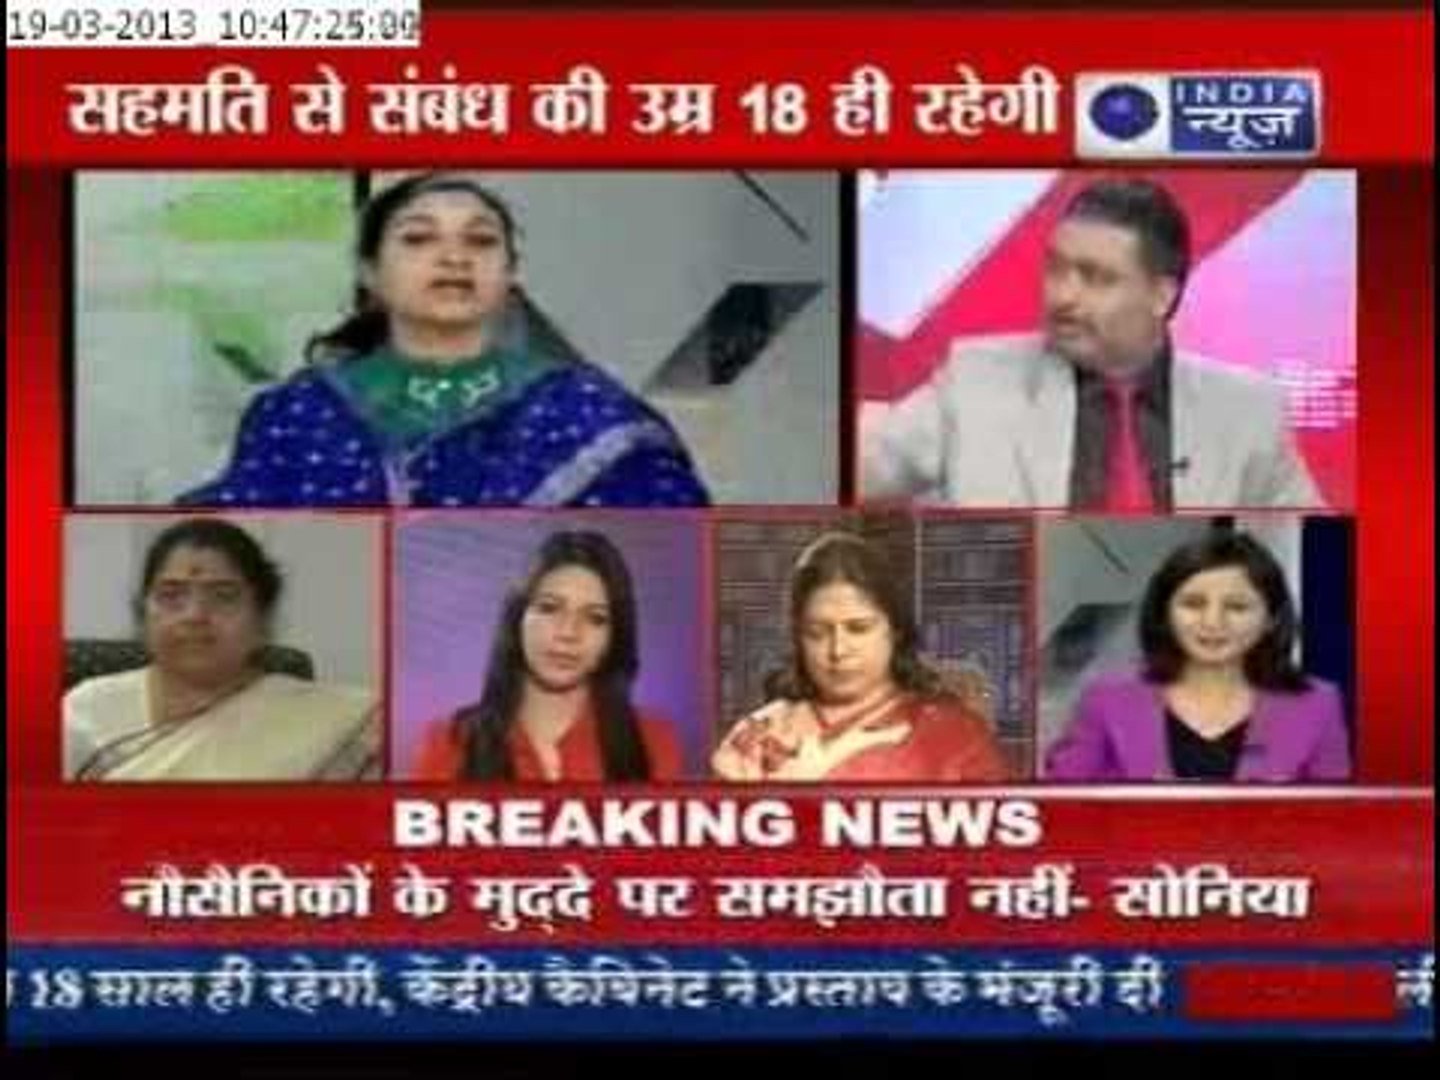 India News: Debate Over Security for Women in India